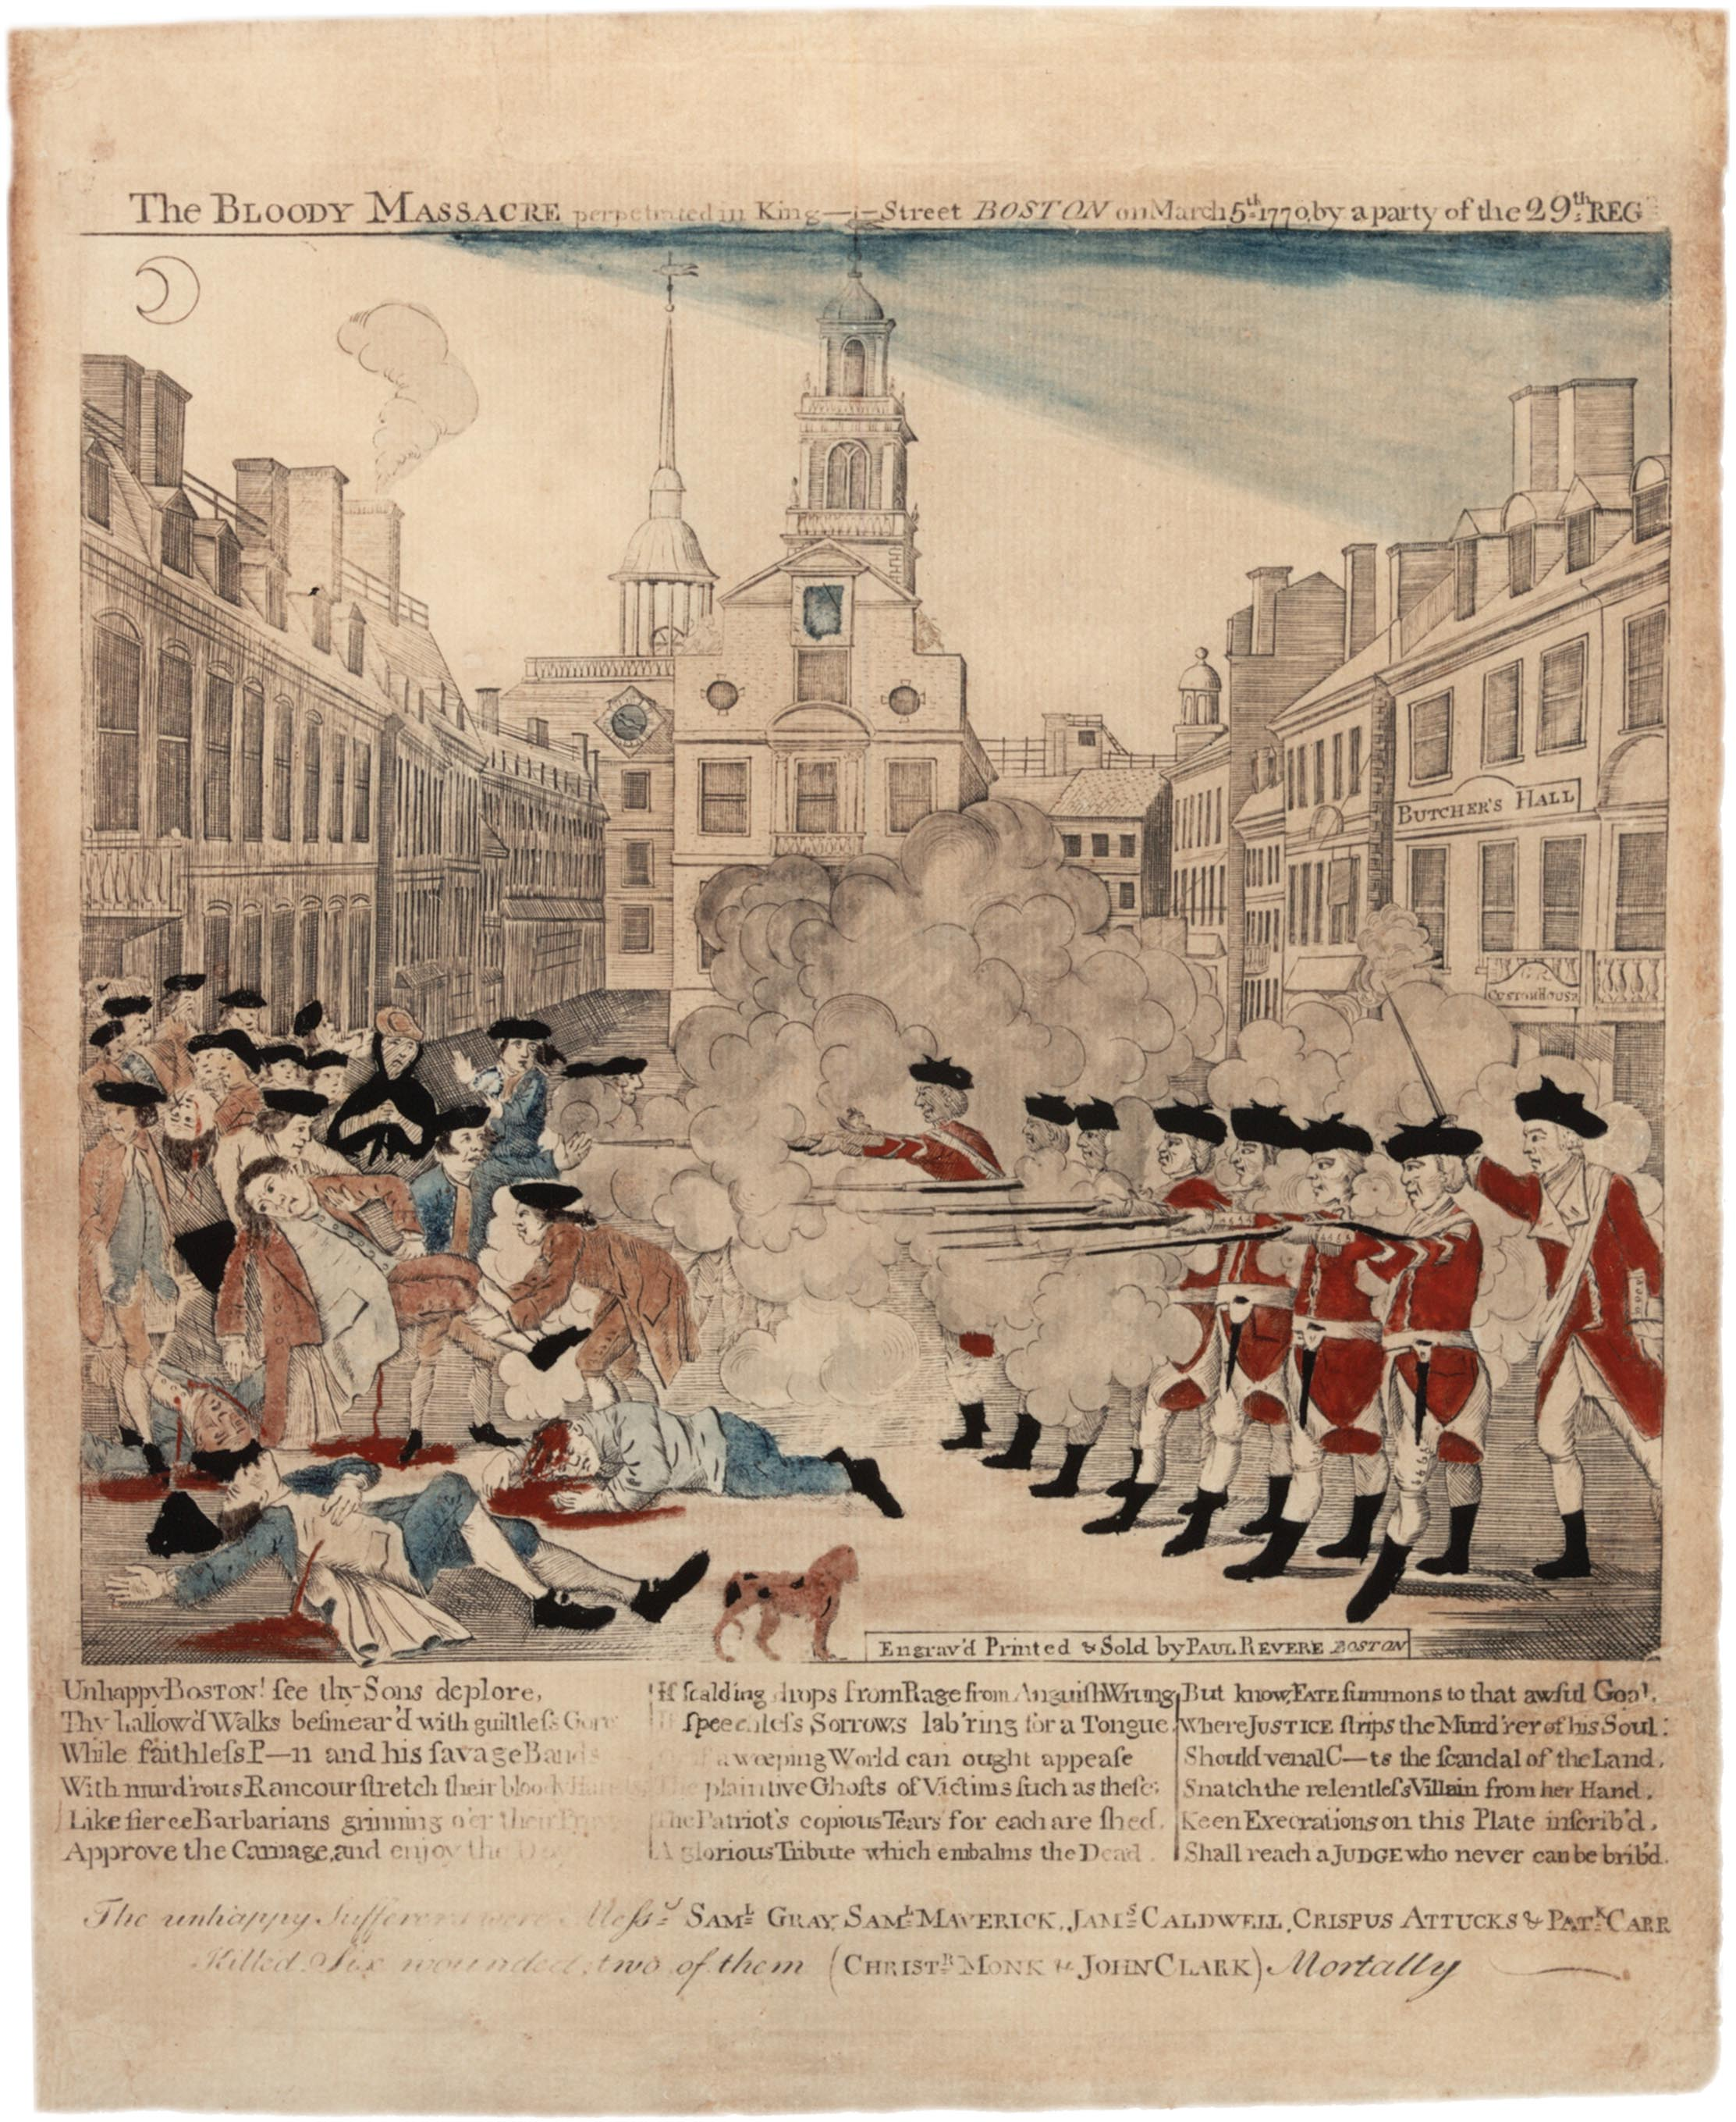 paul revere s engraving of the boston massacre the gilder paul revere ldquothe bloody massacre in king street 5 1770